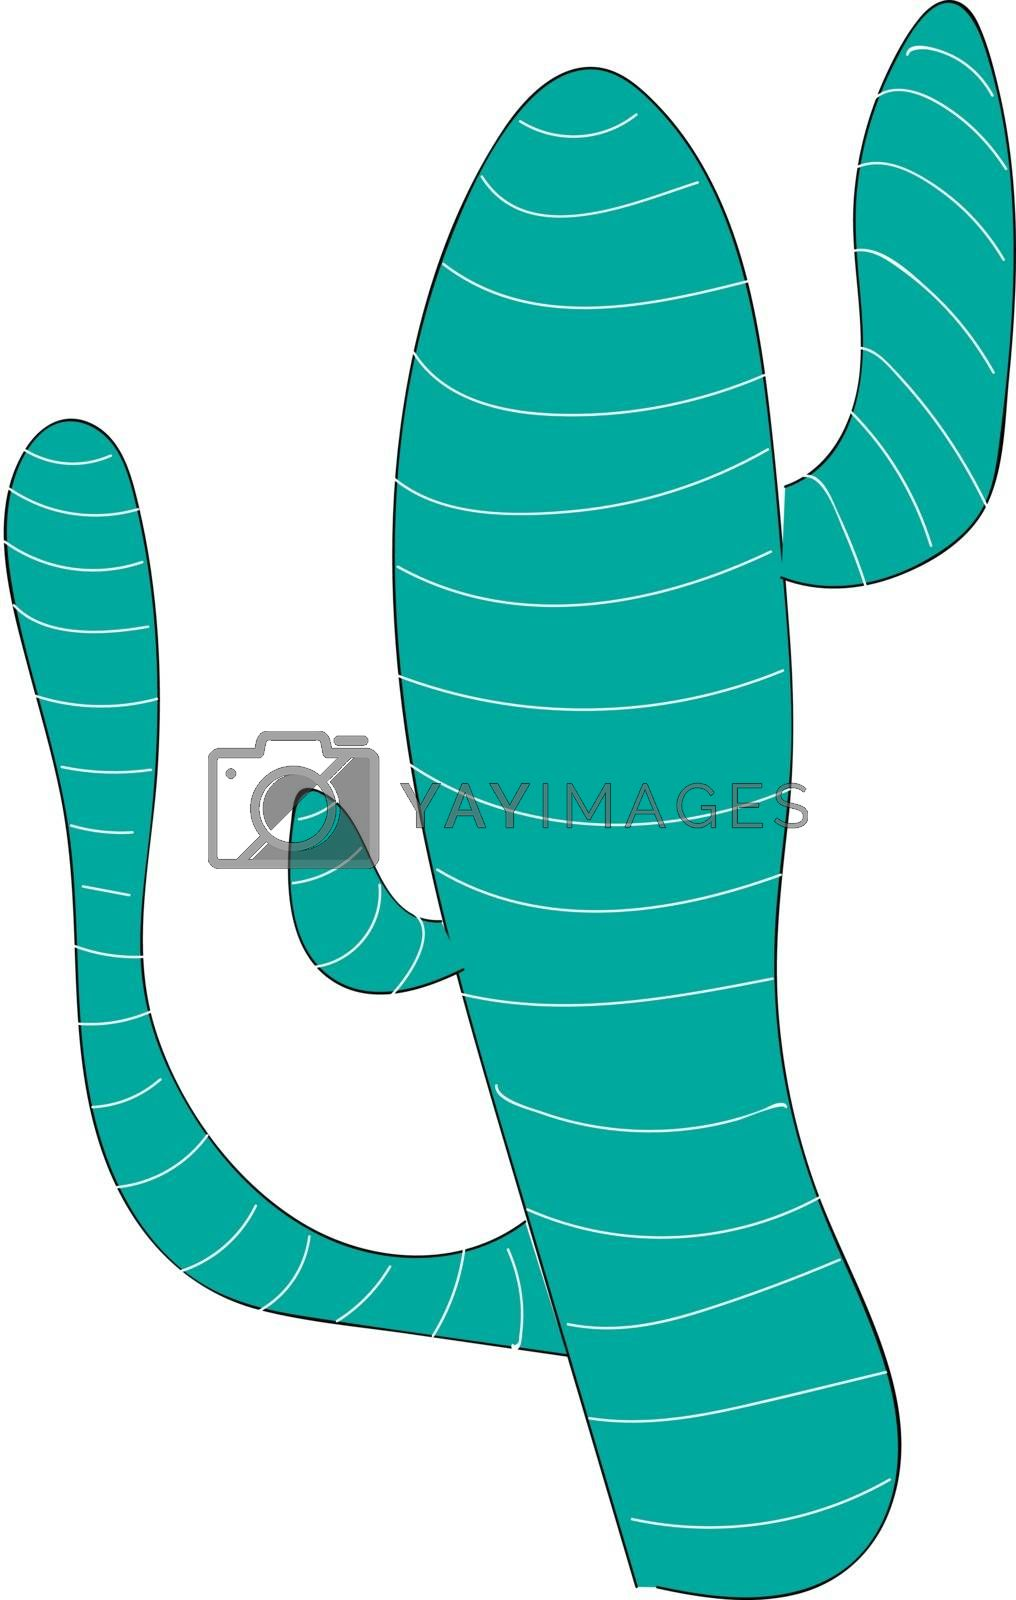 Royalty free image of Blue cactus with three branches illustration vector on white bac by Morphart